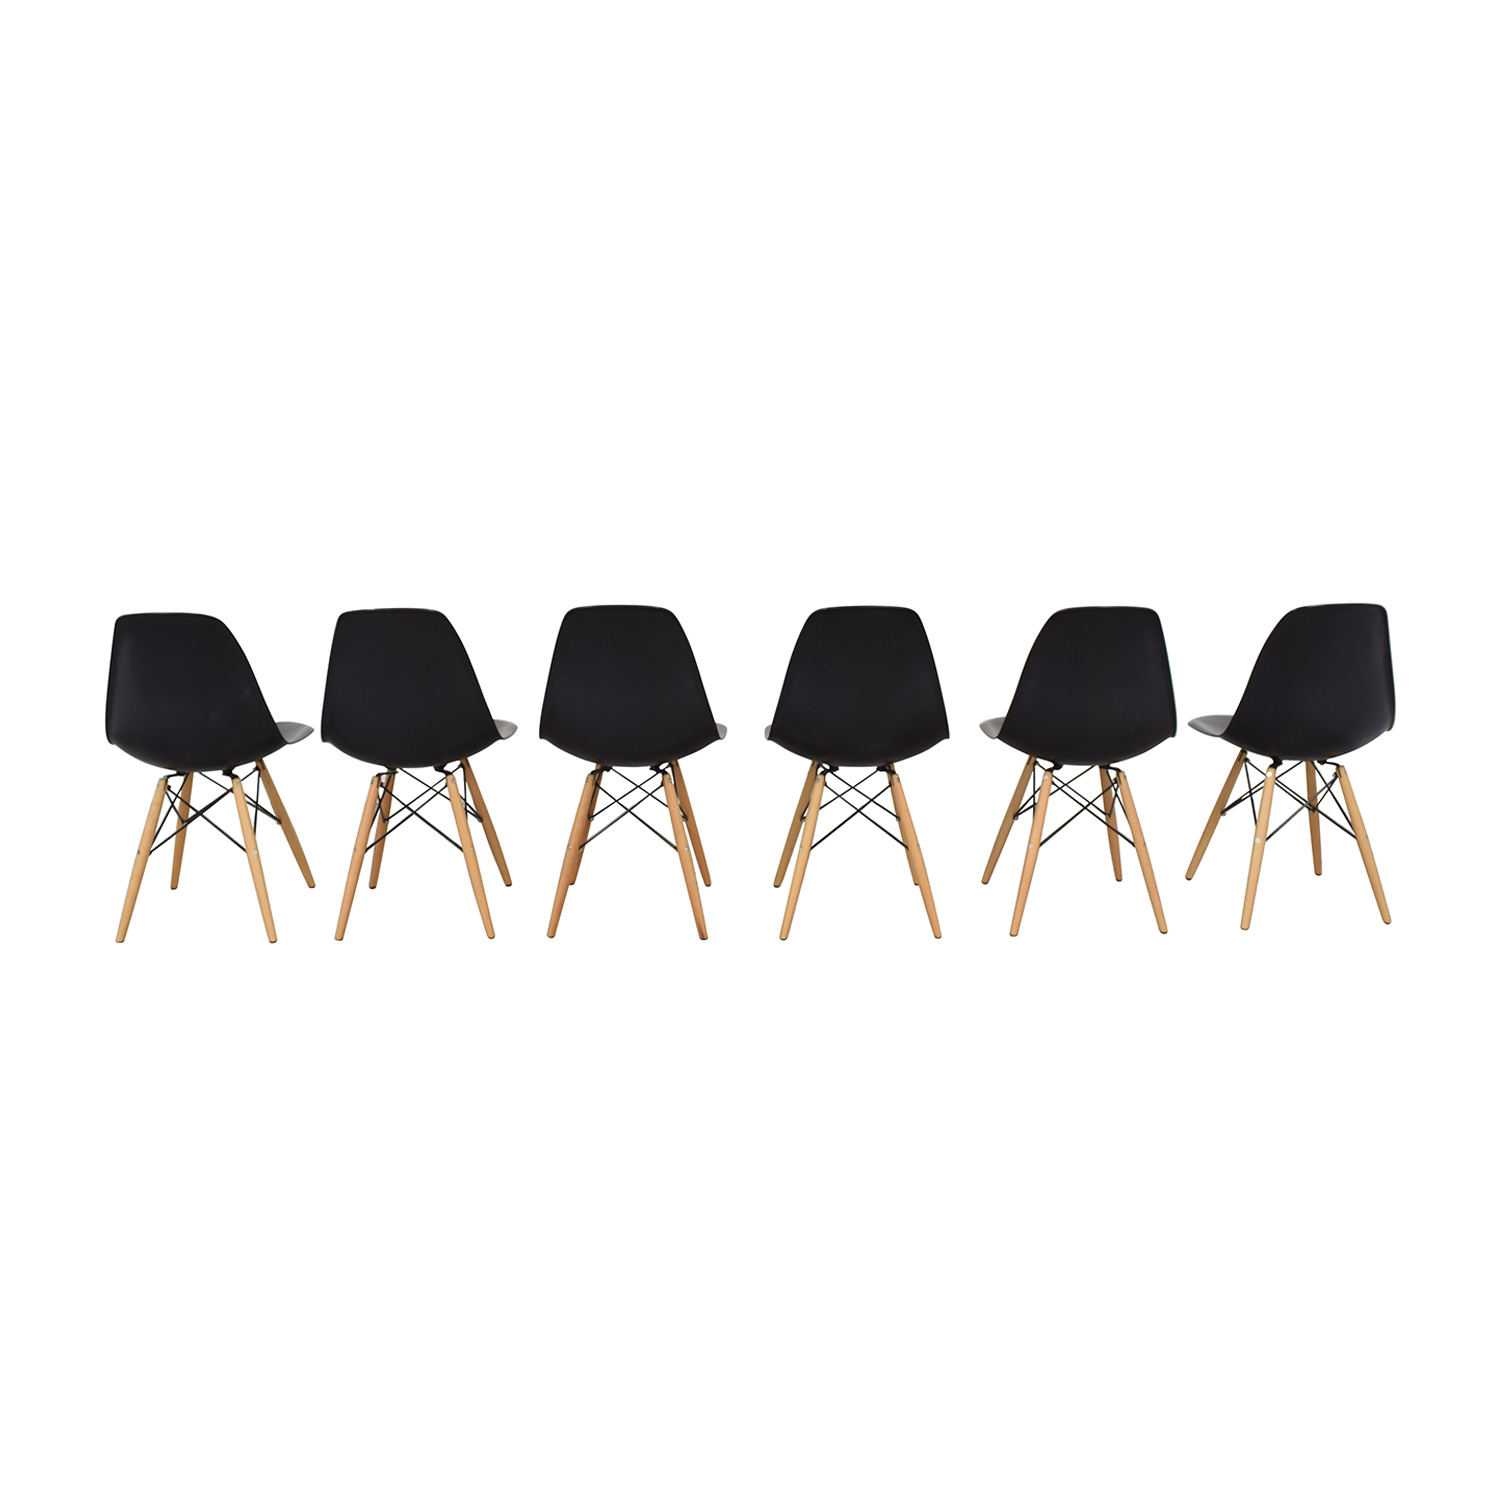 Black Eames-Style Molded Plastic Dining Chairs with Wooden Legs Chairs